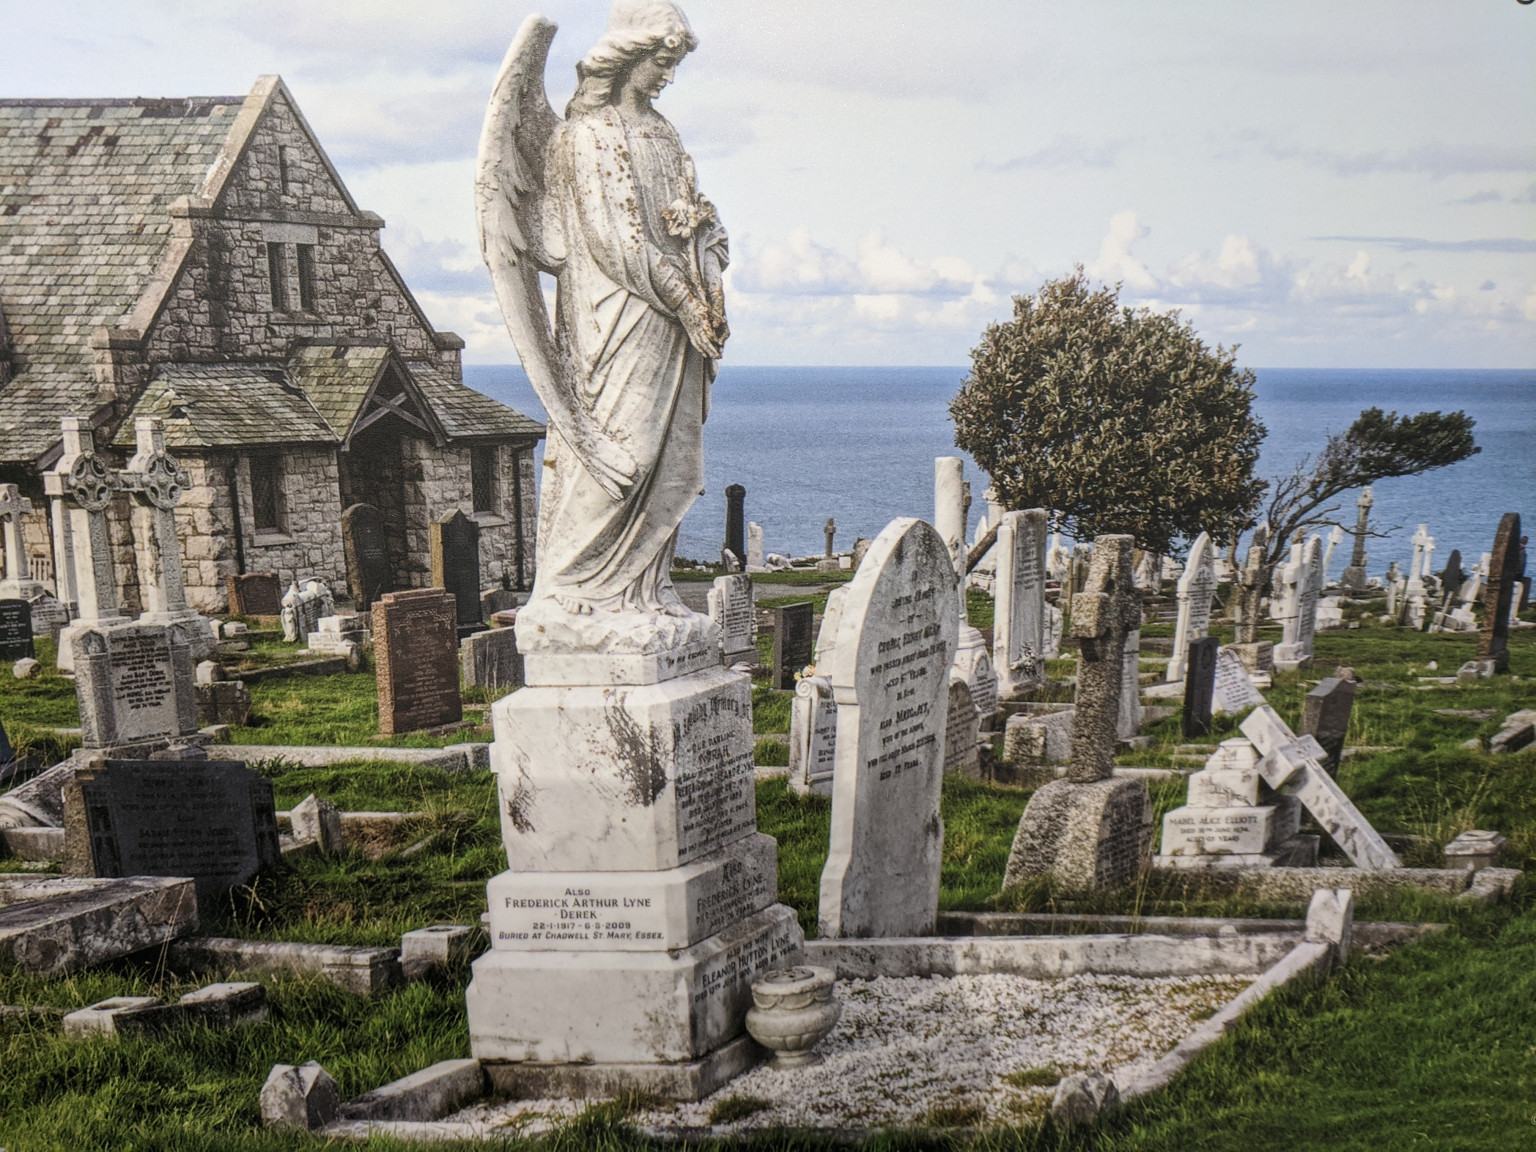 The Great Orme Cemetary